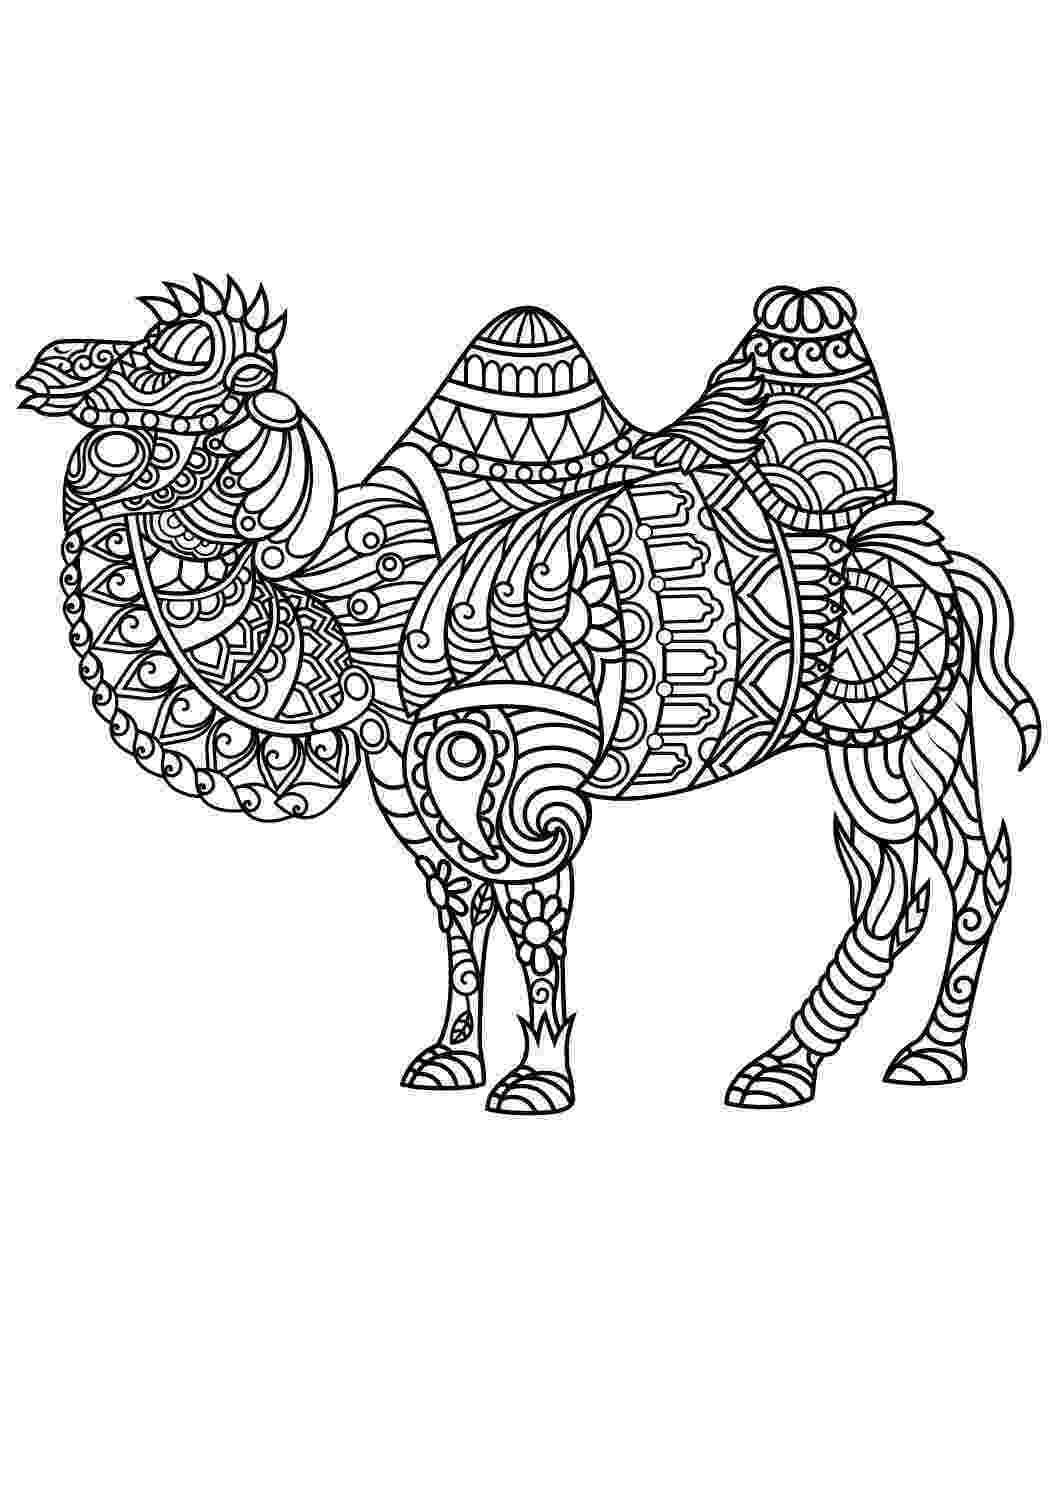 animal coloring book for adults animal coloring pages pdf mandala coloring pages adult book adults coloring for animal